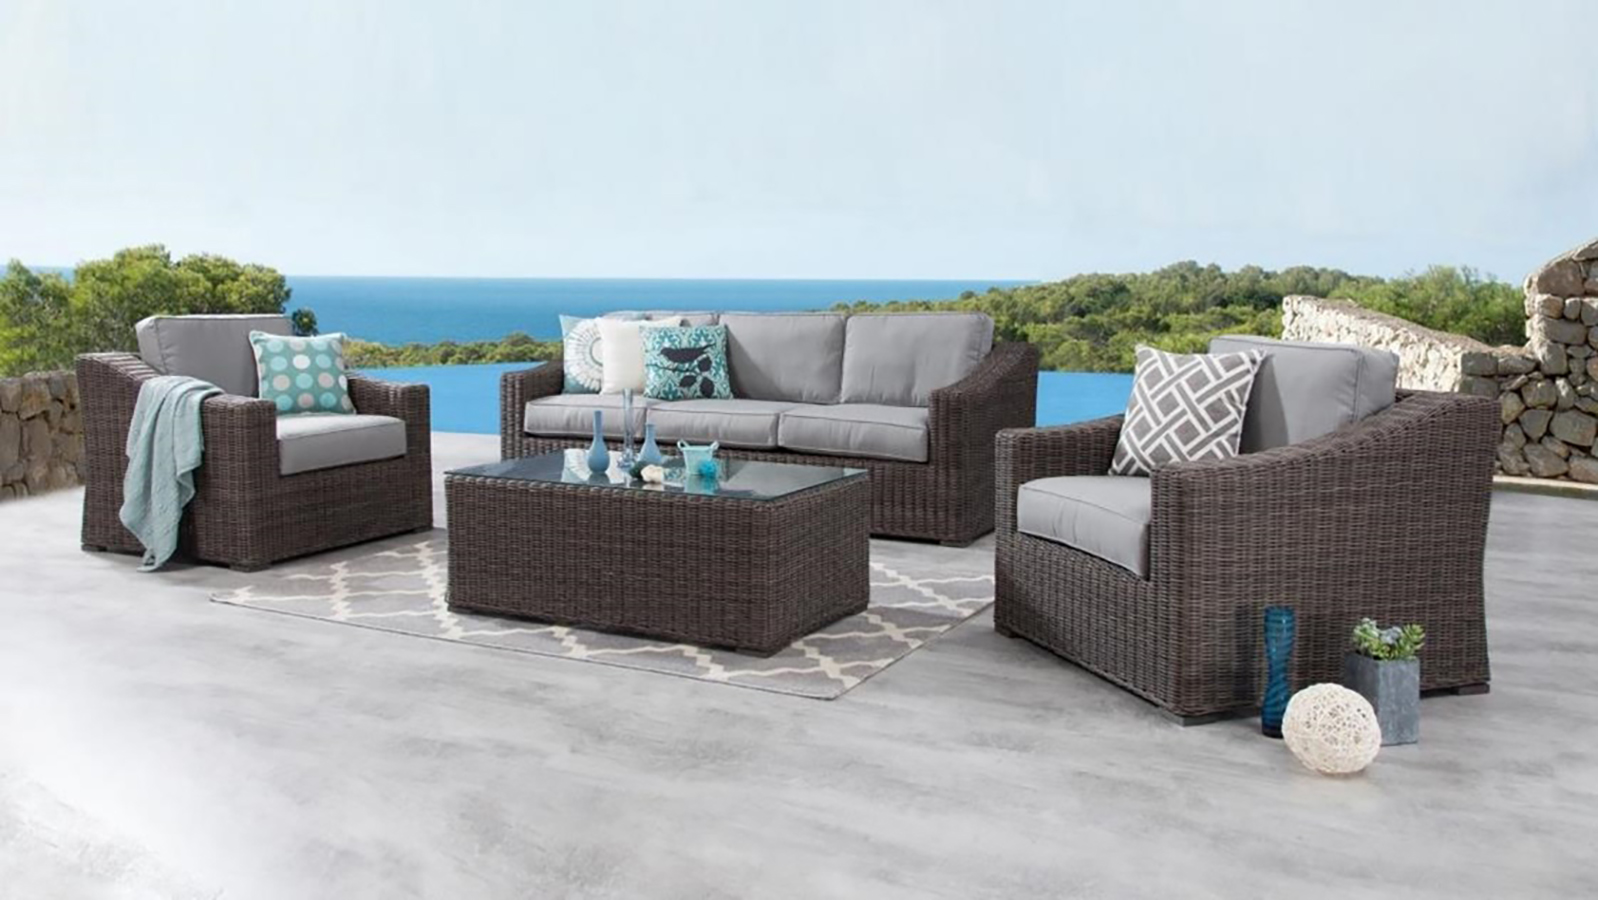 canyon outdoor patio furniture collection